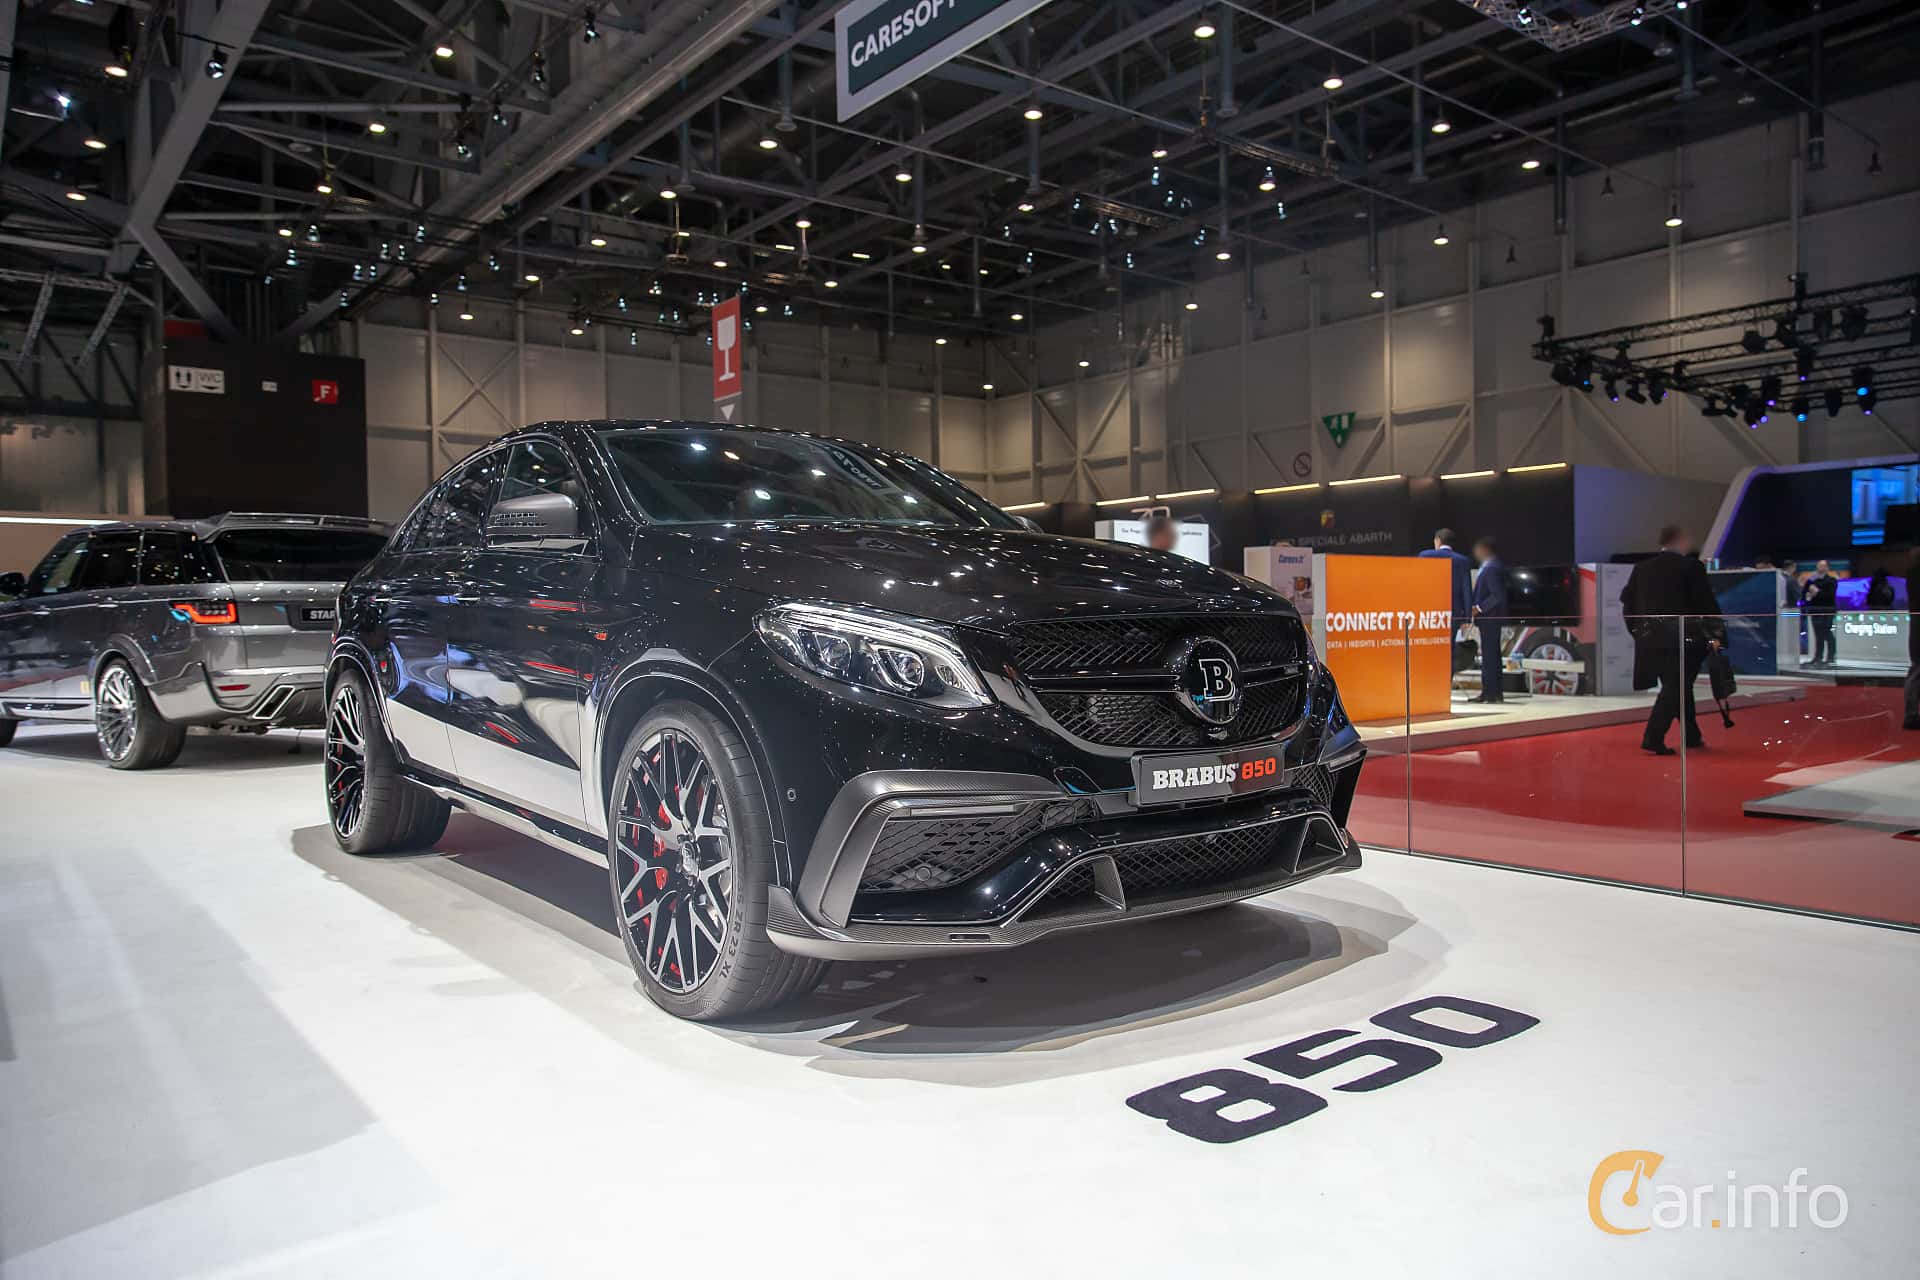 Front/Side  of Brabus GLE 850 Coupé  AMG-SpeedShift Plus 7G-Tronic, 850ps, 2019 at Geneva Motor Show 2019